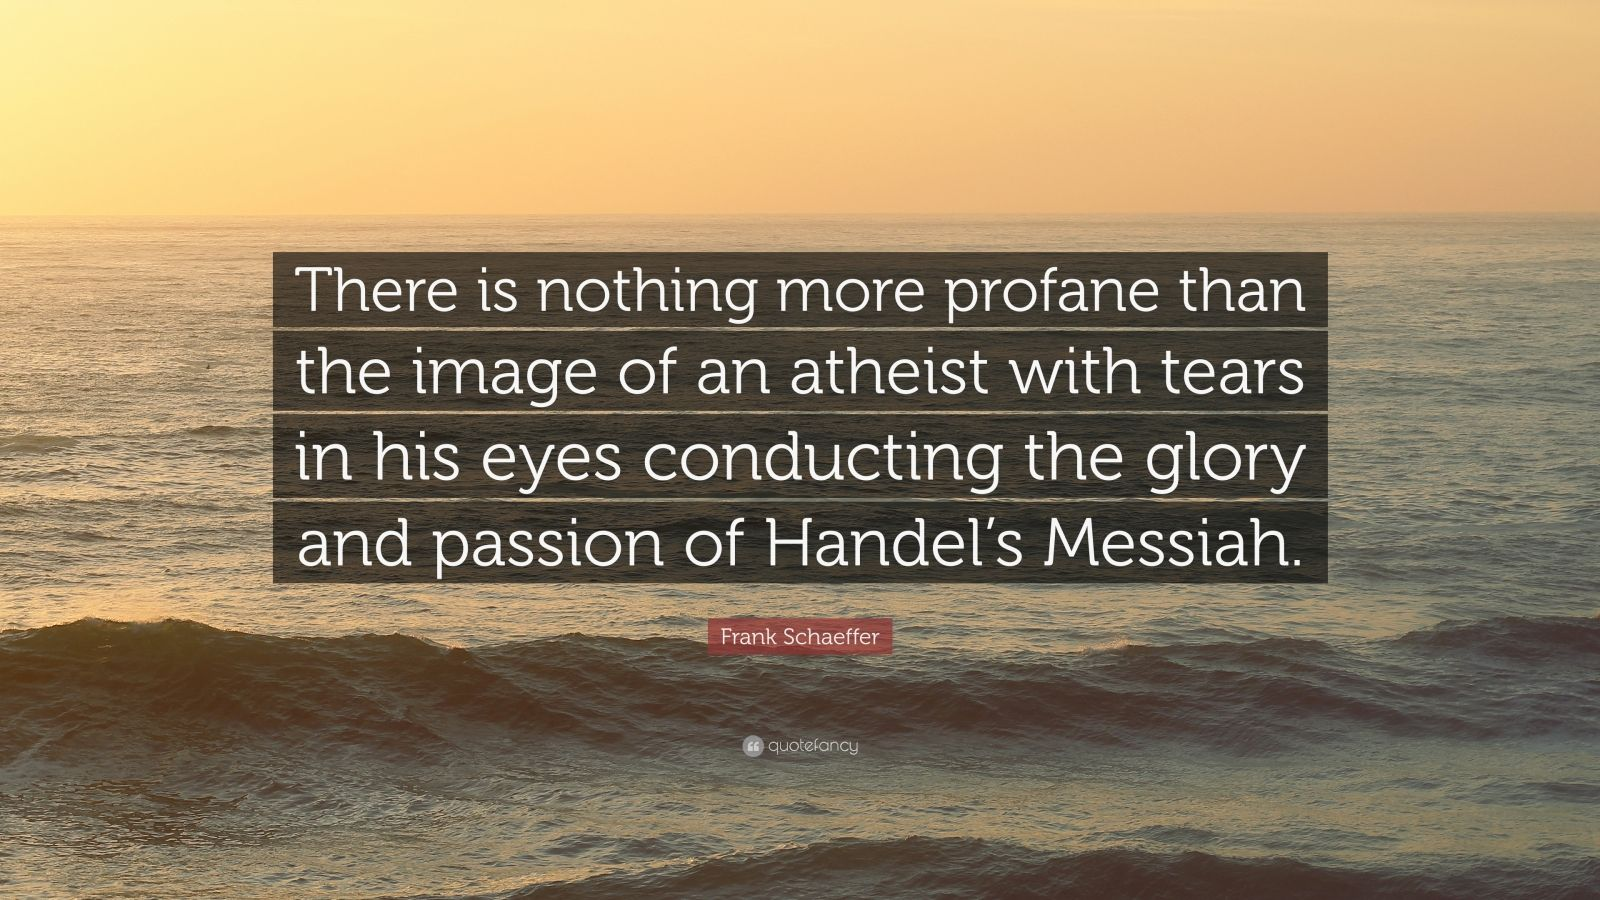 """Frank Schaeffer Quote: """"There is nothing more profane than the image of an atheist with tears in his eyes conducting the glory and passion of Handel's Messiah."""""""